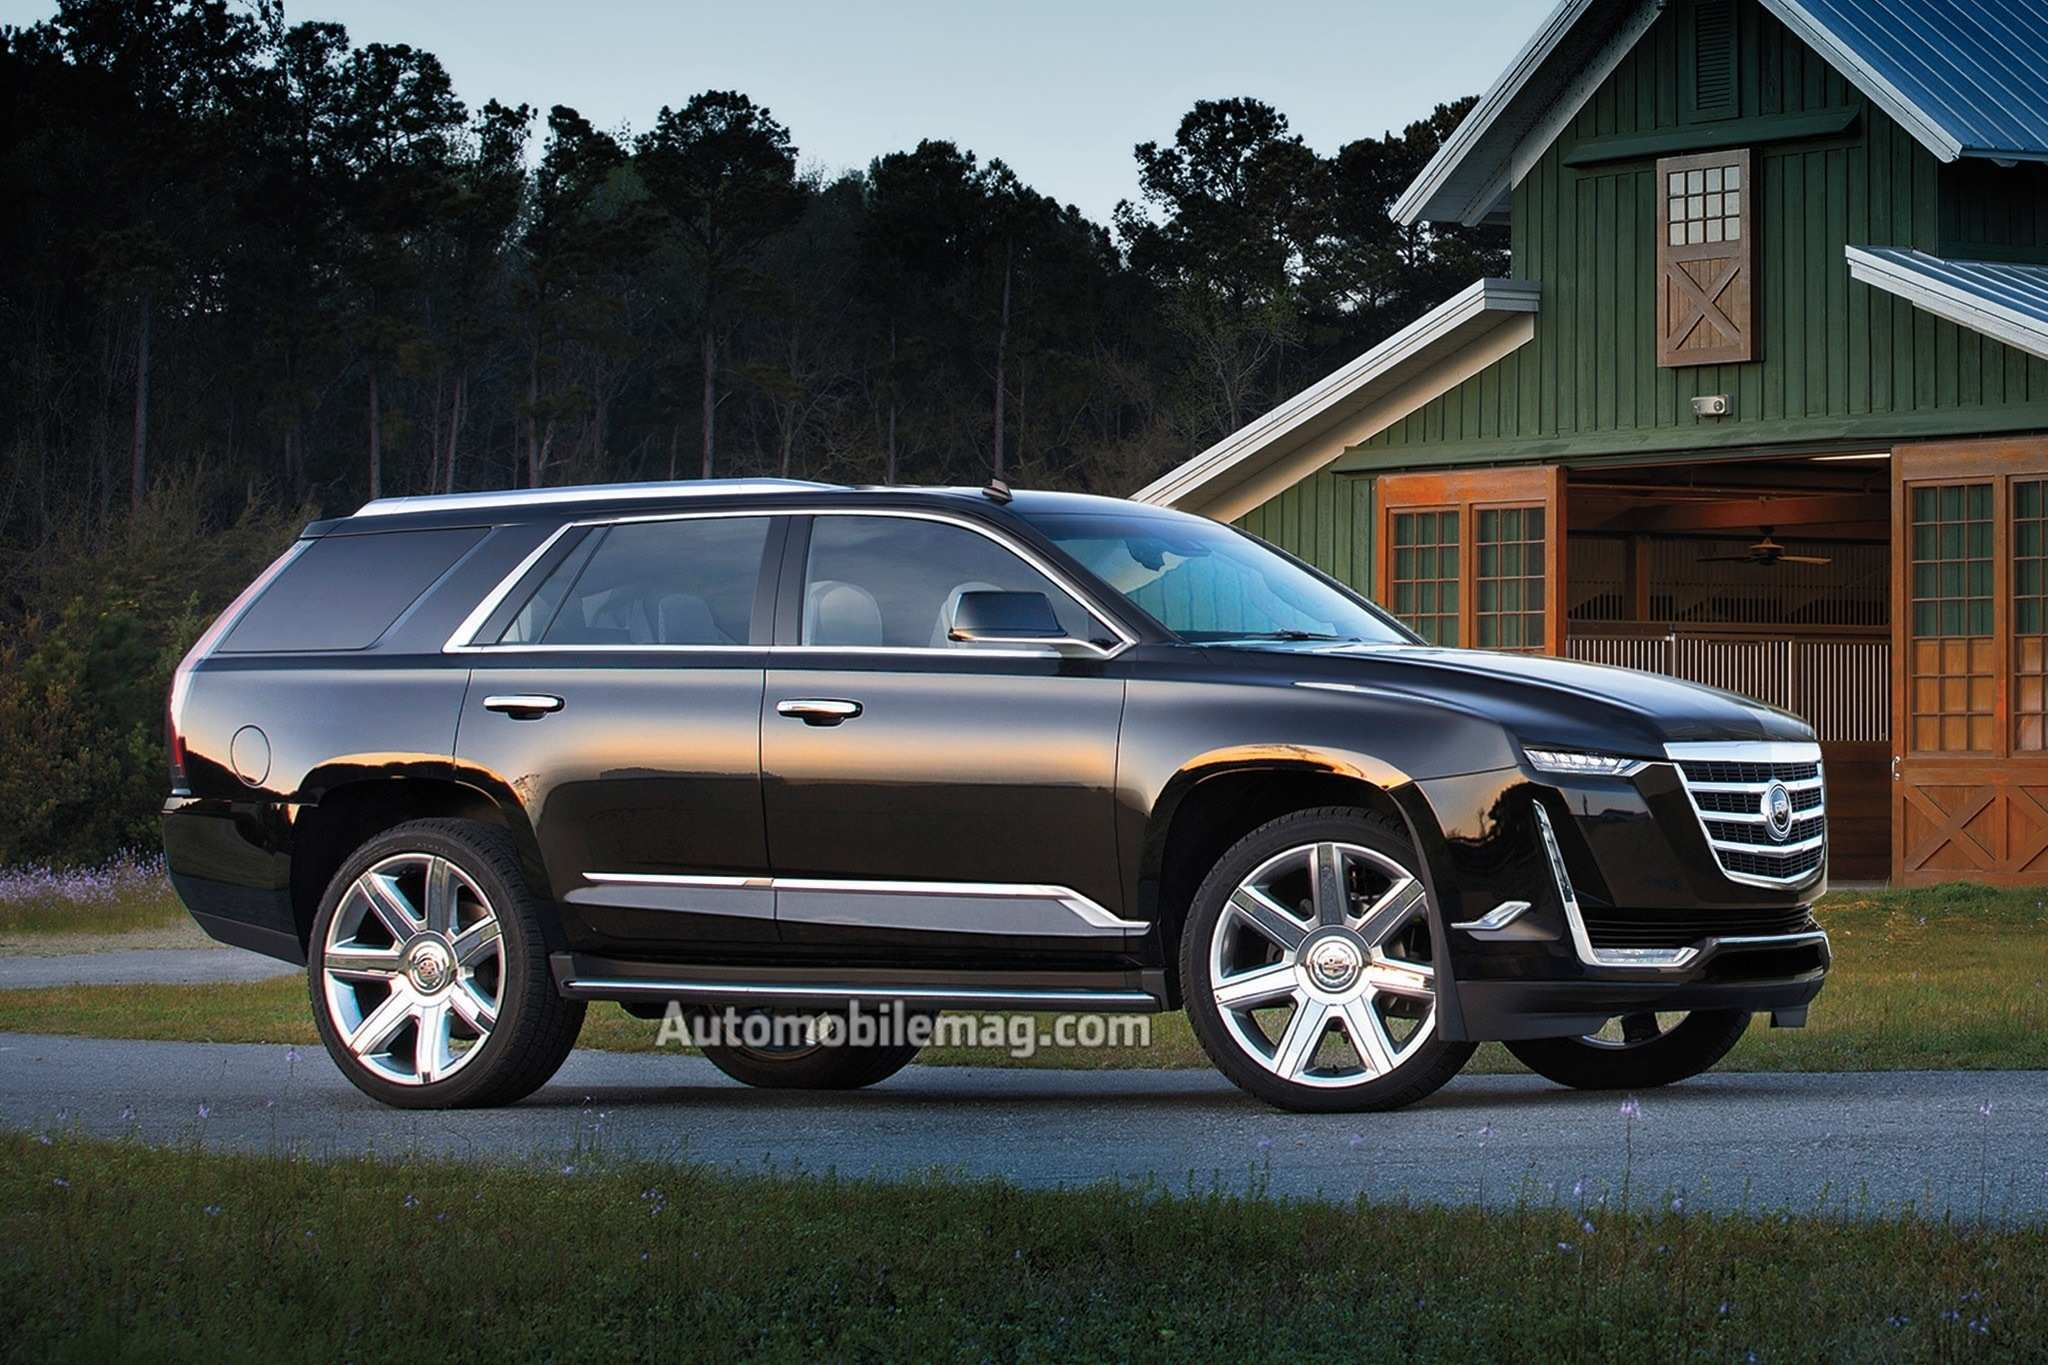 33 New 2019 Cadillac Srx Release Date for 2019 Cadillac Srx